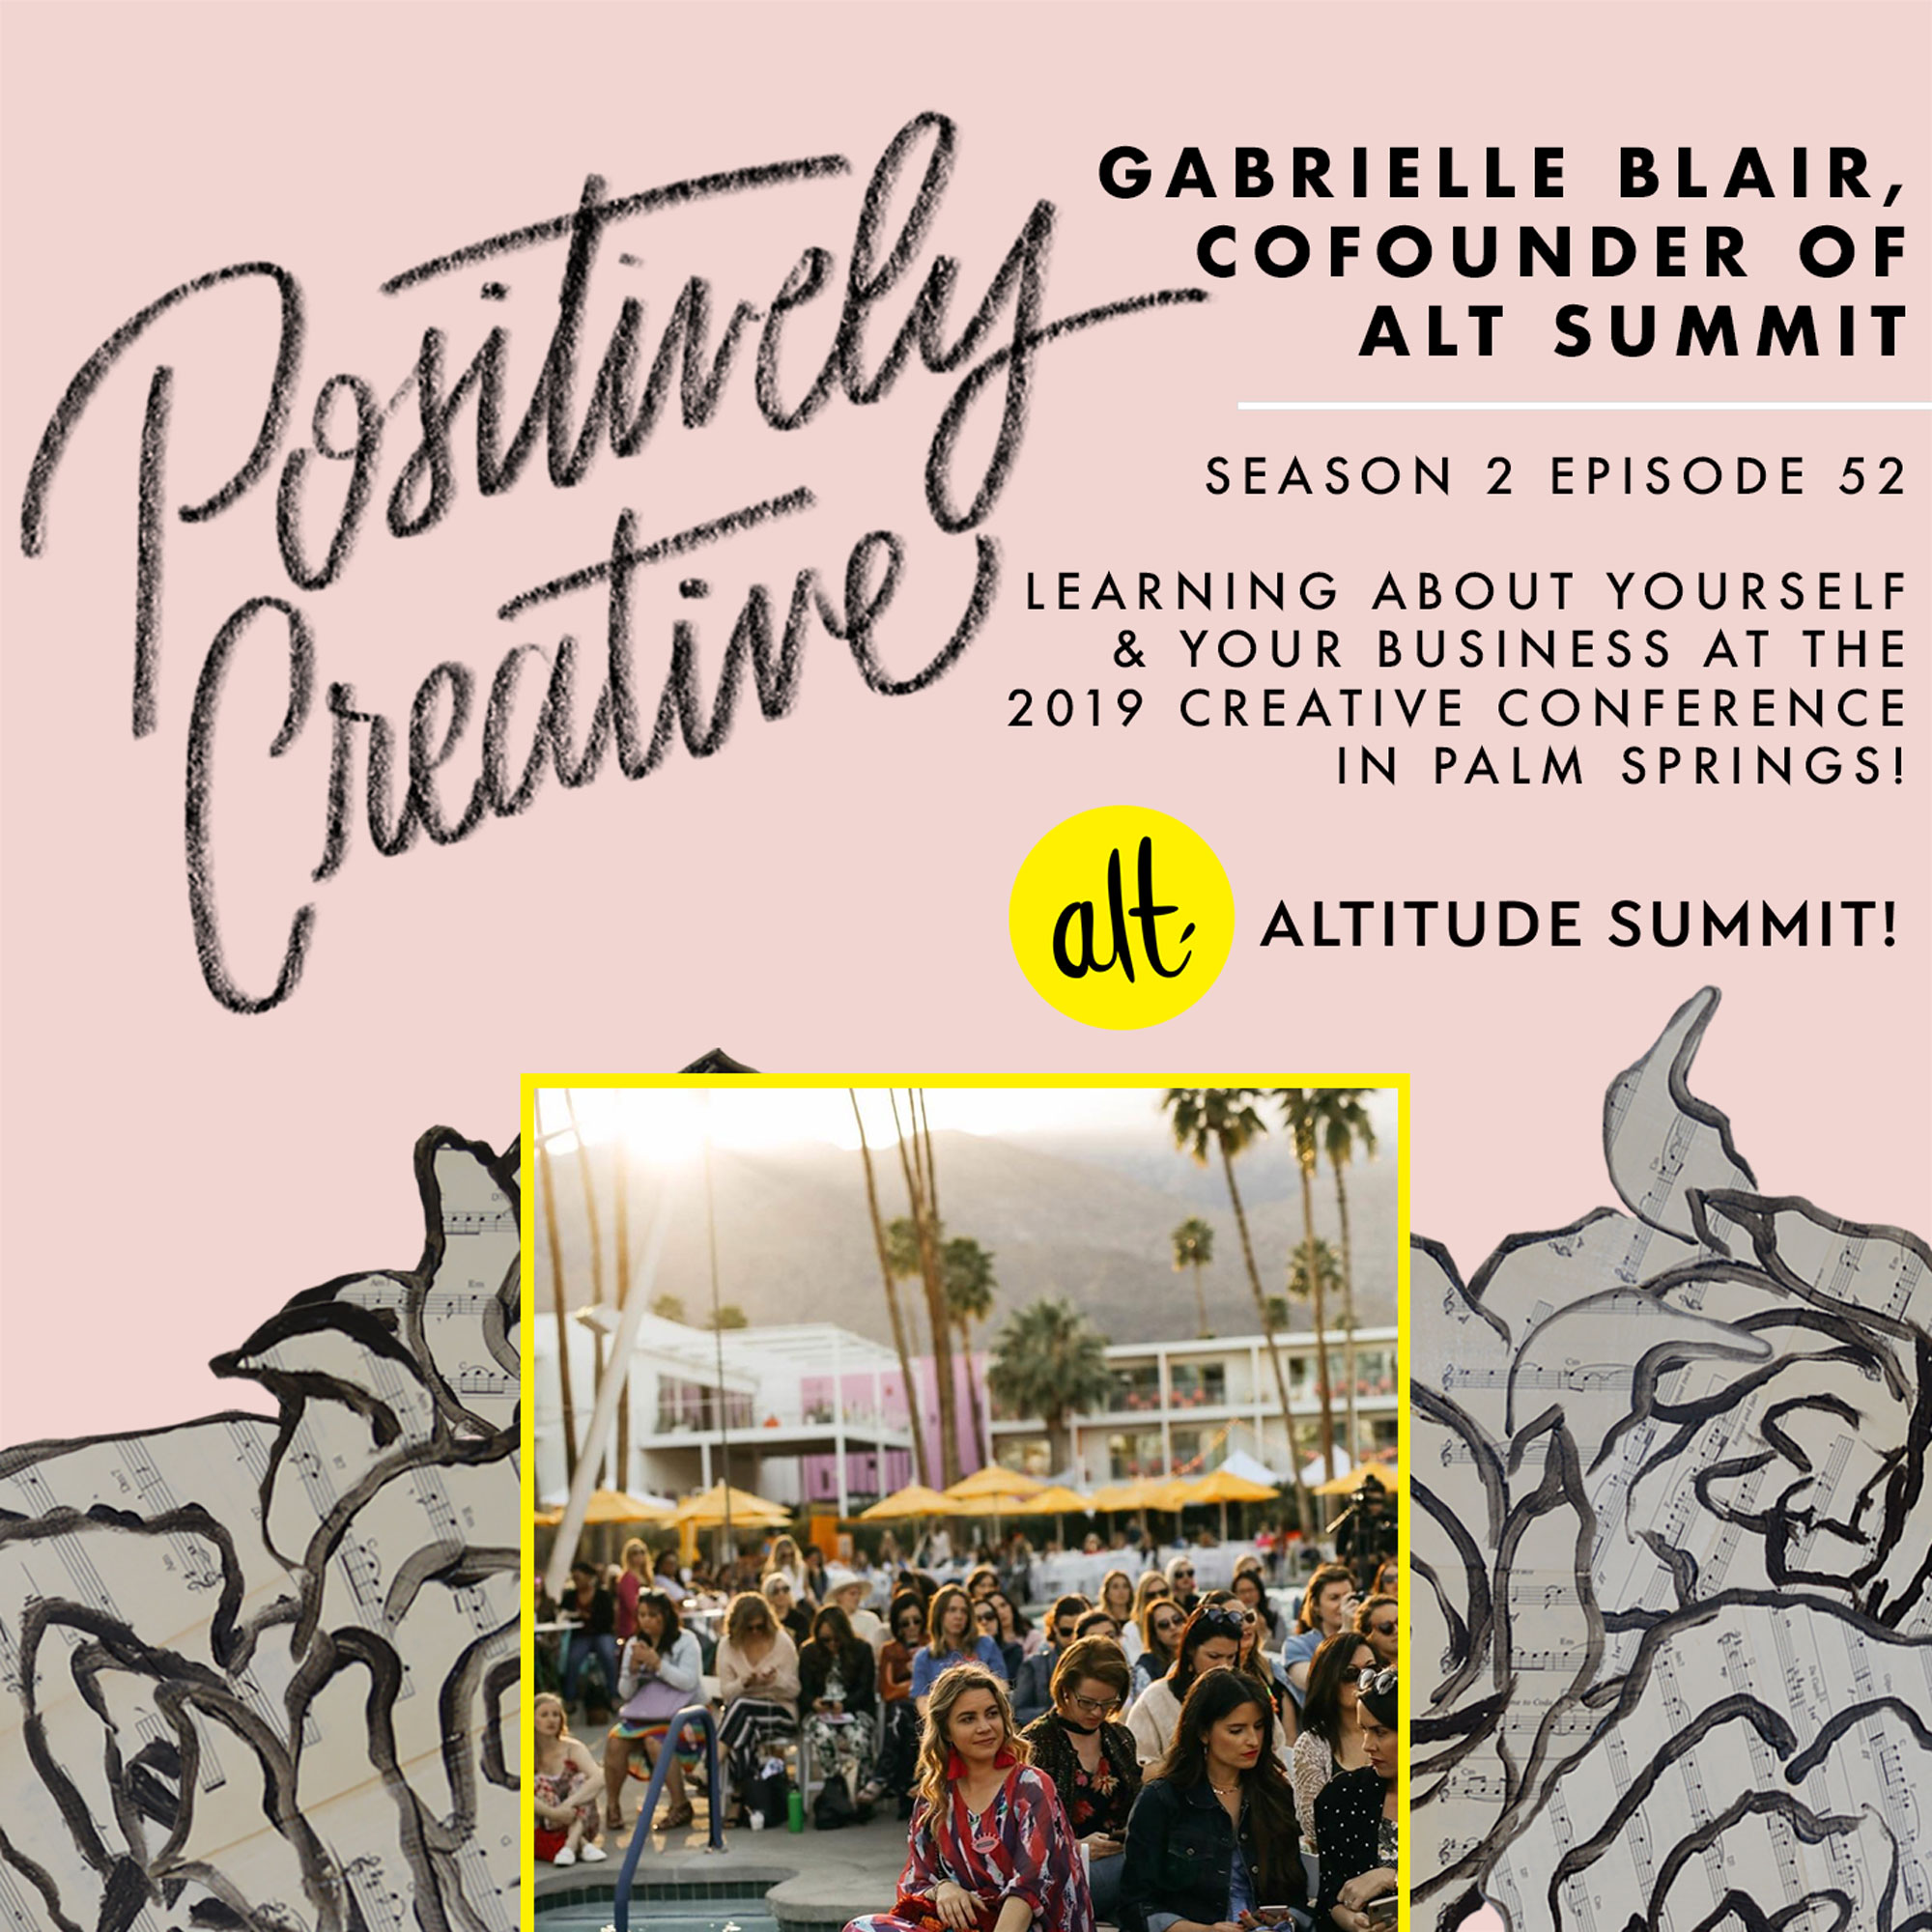 S2-Ep-52---Gabrielle-Blair,-cofounder-of-Alt-Summit-on-Connectivity,-Learning-About-Yourself-&-Your-Business-at-the-2019-Creative-Conference-in-Palm-Springs!.jpg